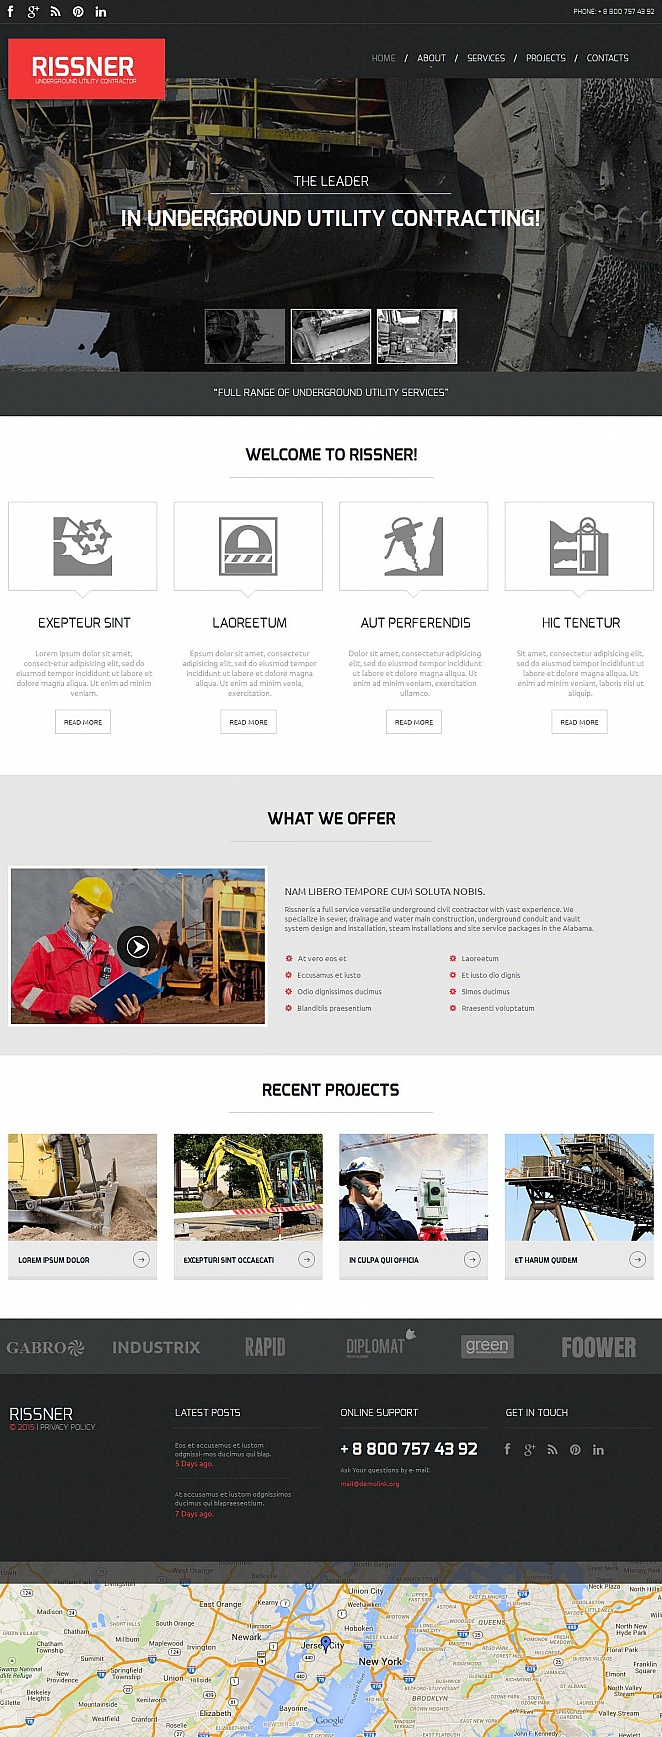 Industrial Website Template with Home Page Slider - image